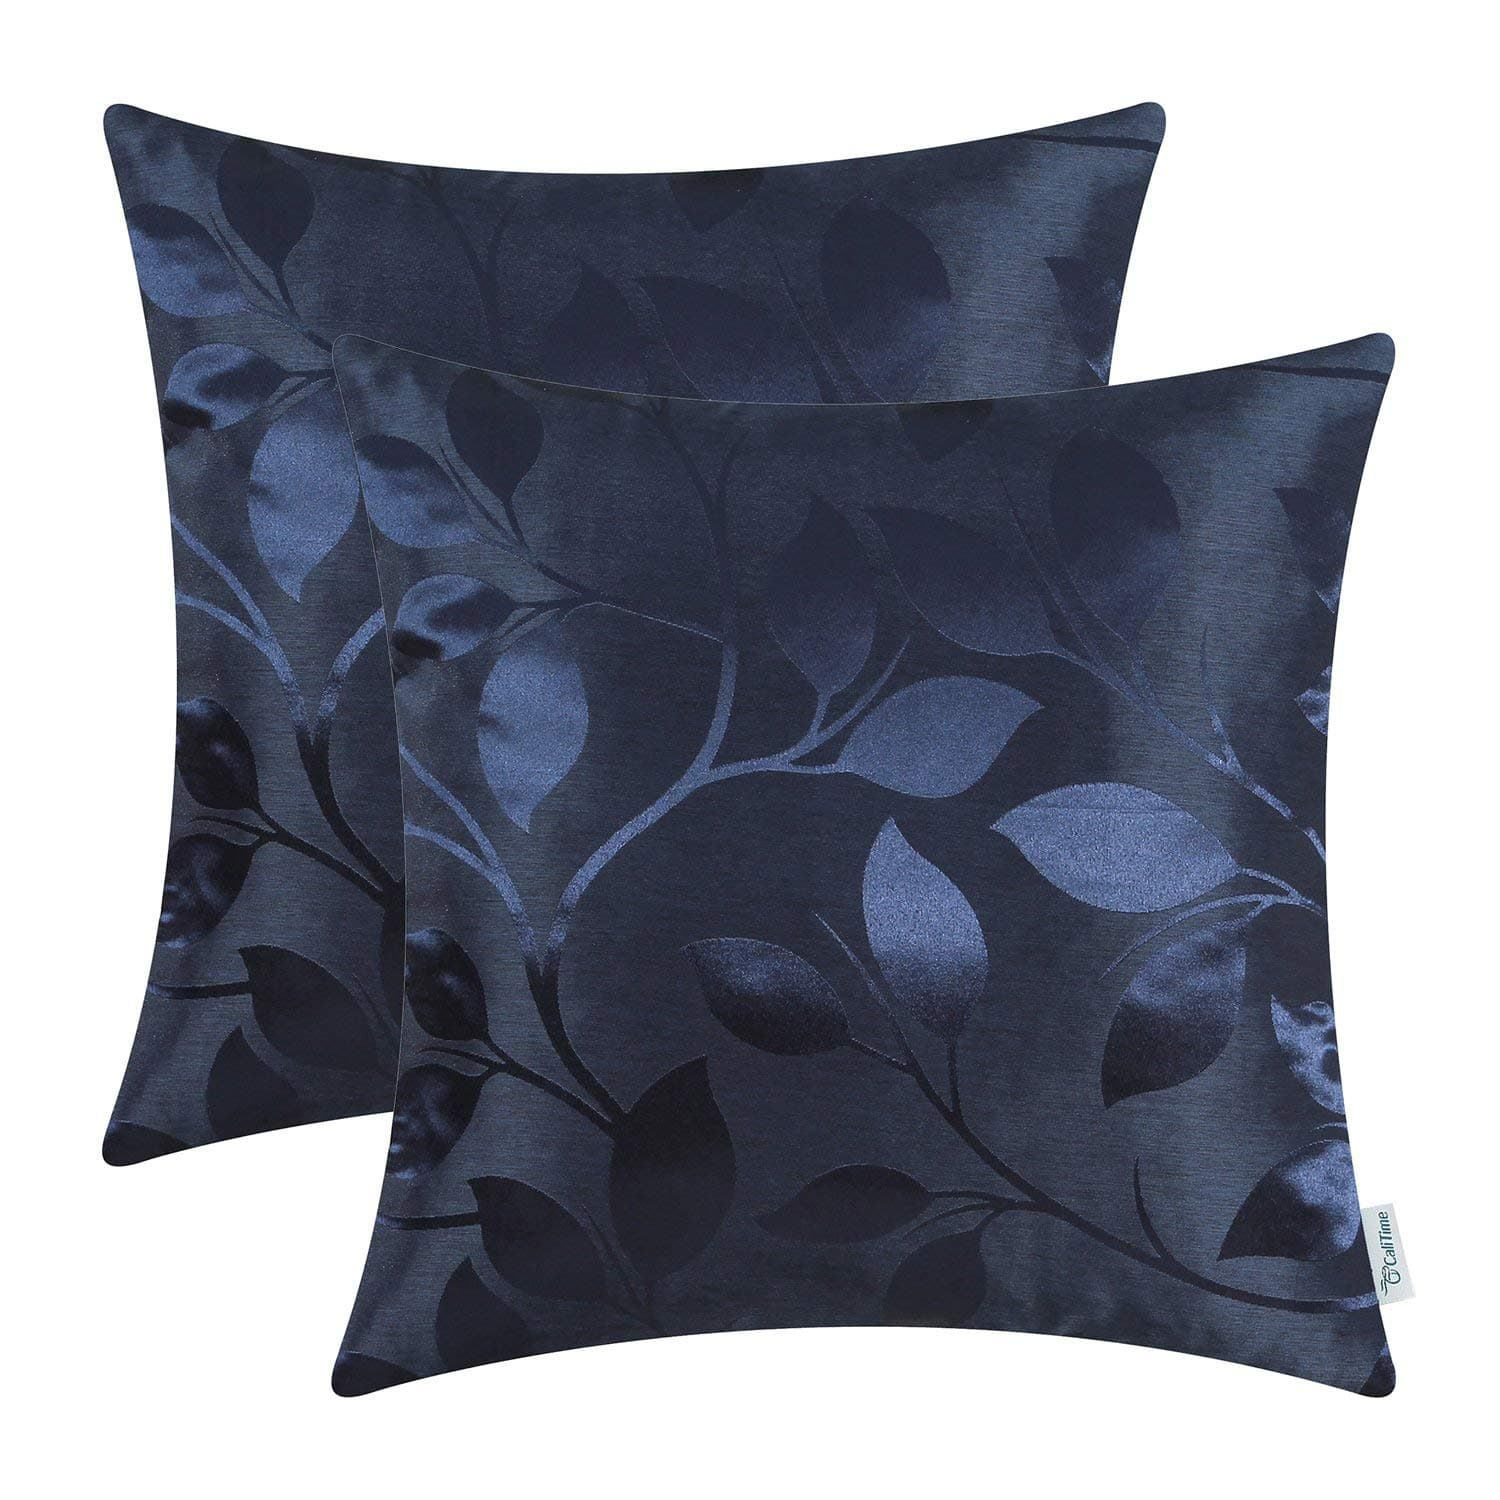 Pack of 2 Throw Pillow Covers Cases,  $6.00 @Amazon